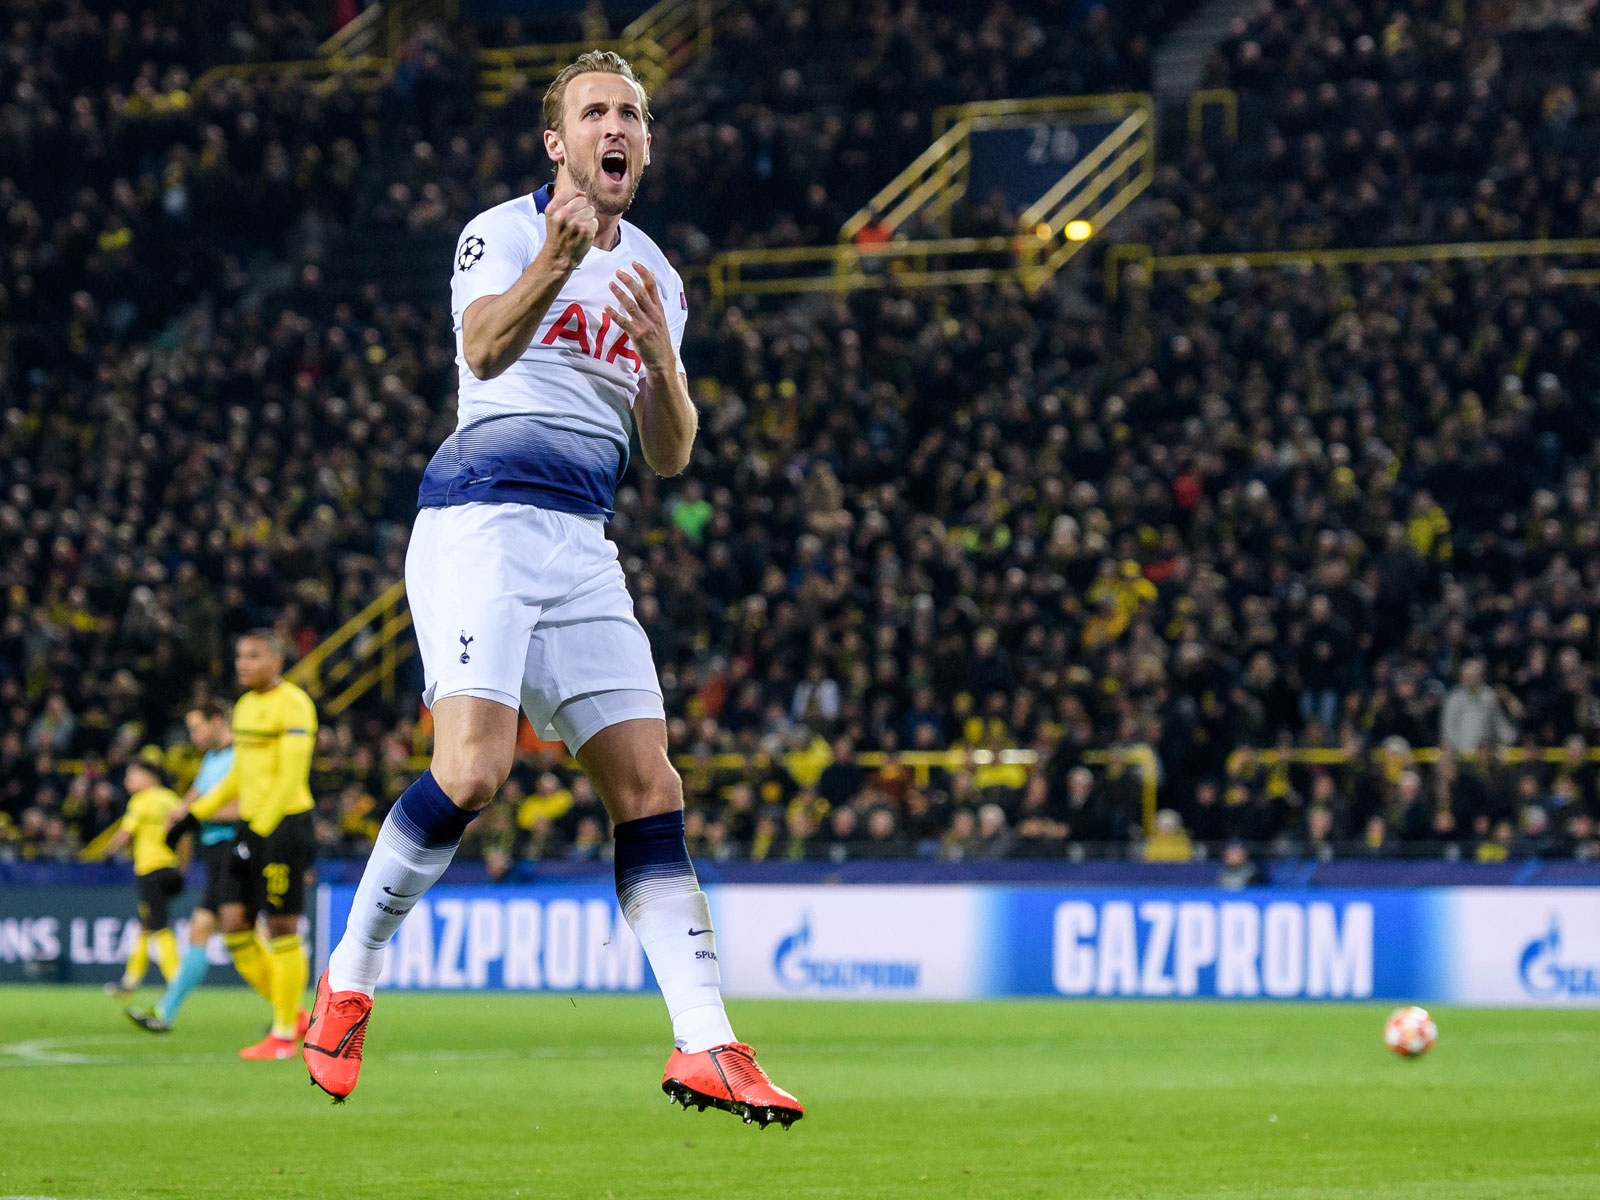 Harry Kane scores for Tottenham vs. Dortmund in the Champions League